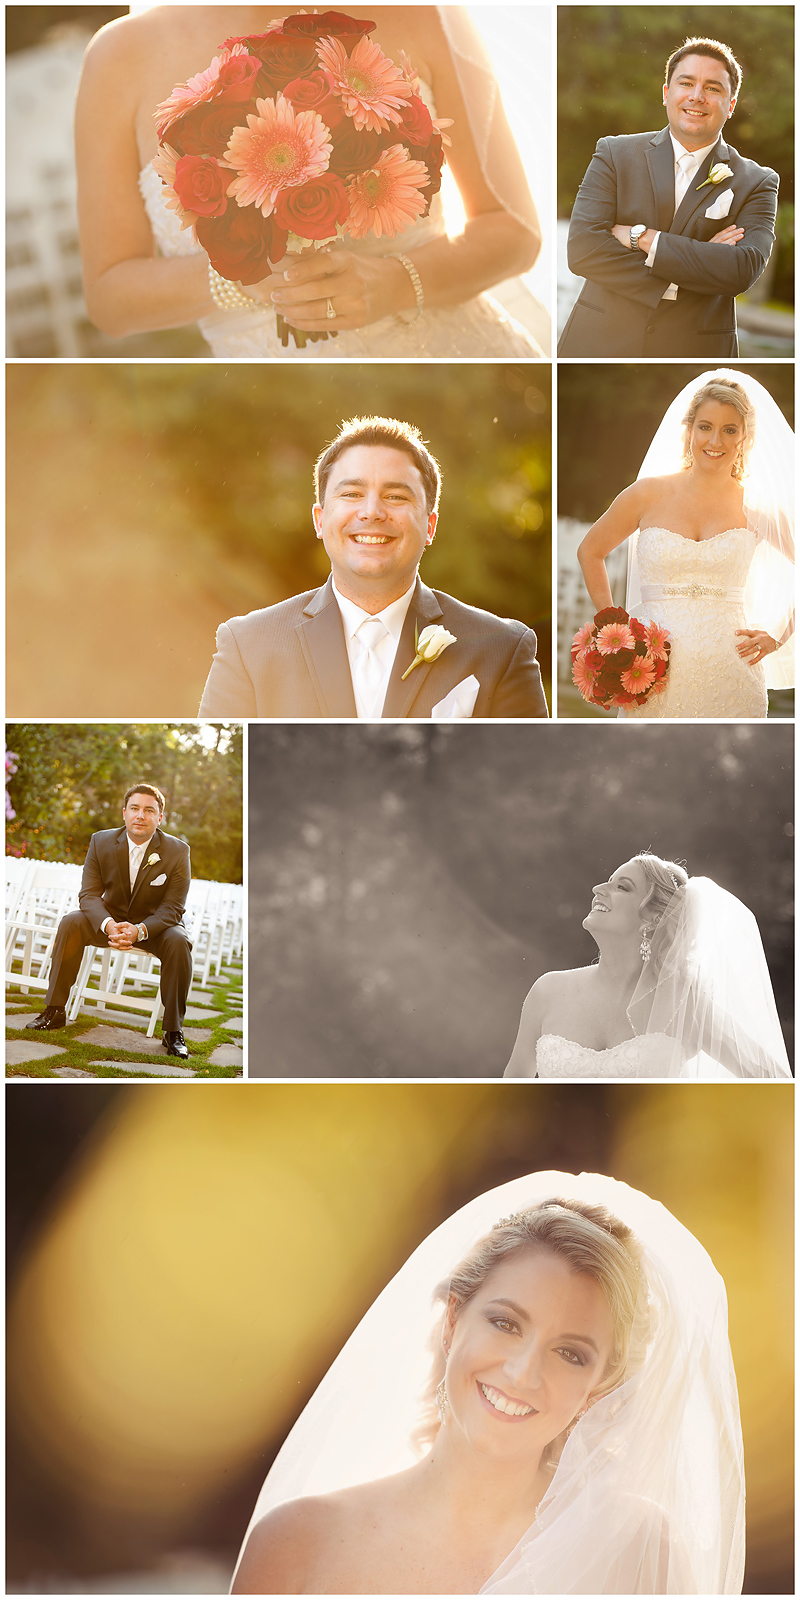 Greenlaw Griffin Wedding3 web Norcross, GA | BerryTree Photography | Jesse & L'Shea! – Married at The Atrium